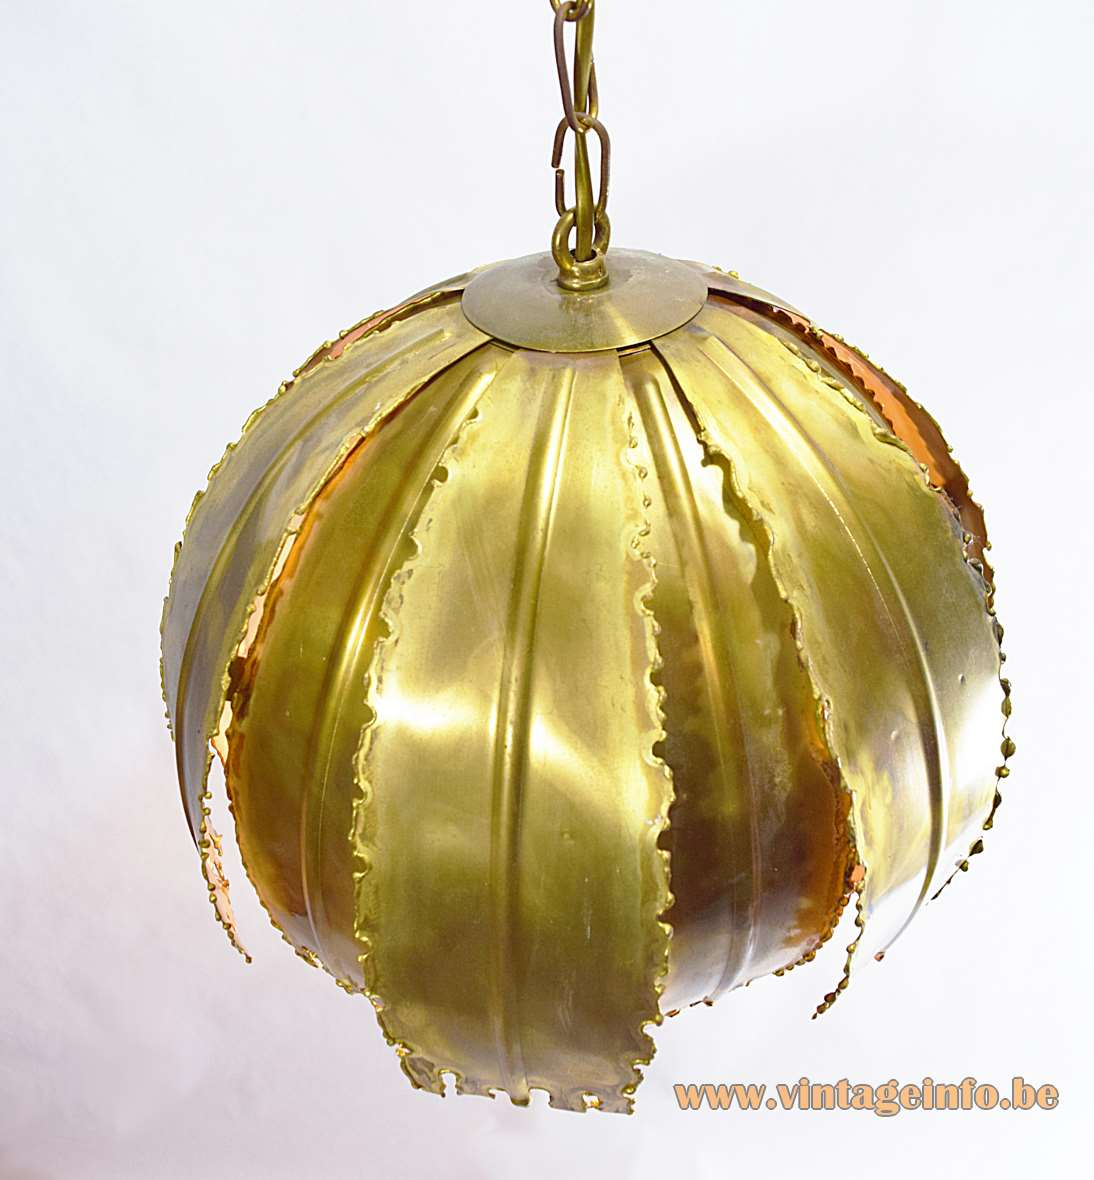 Svend Aage Holm Sørensen burned brass brutalist pendant lamp, Model 6404, 60s/70s flower leaves